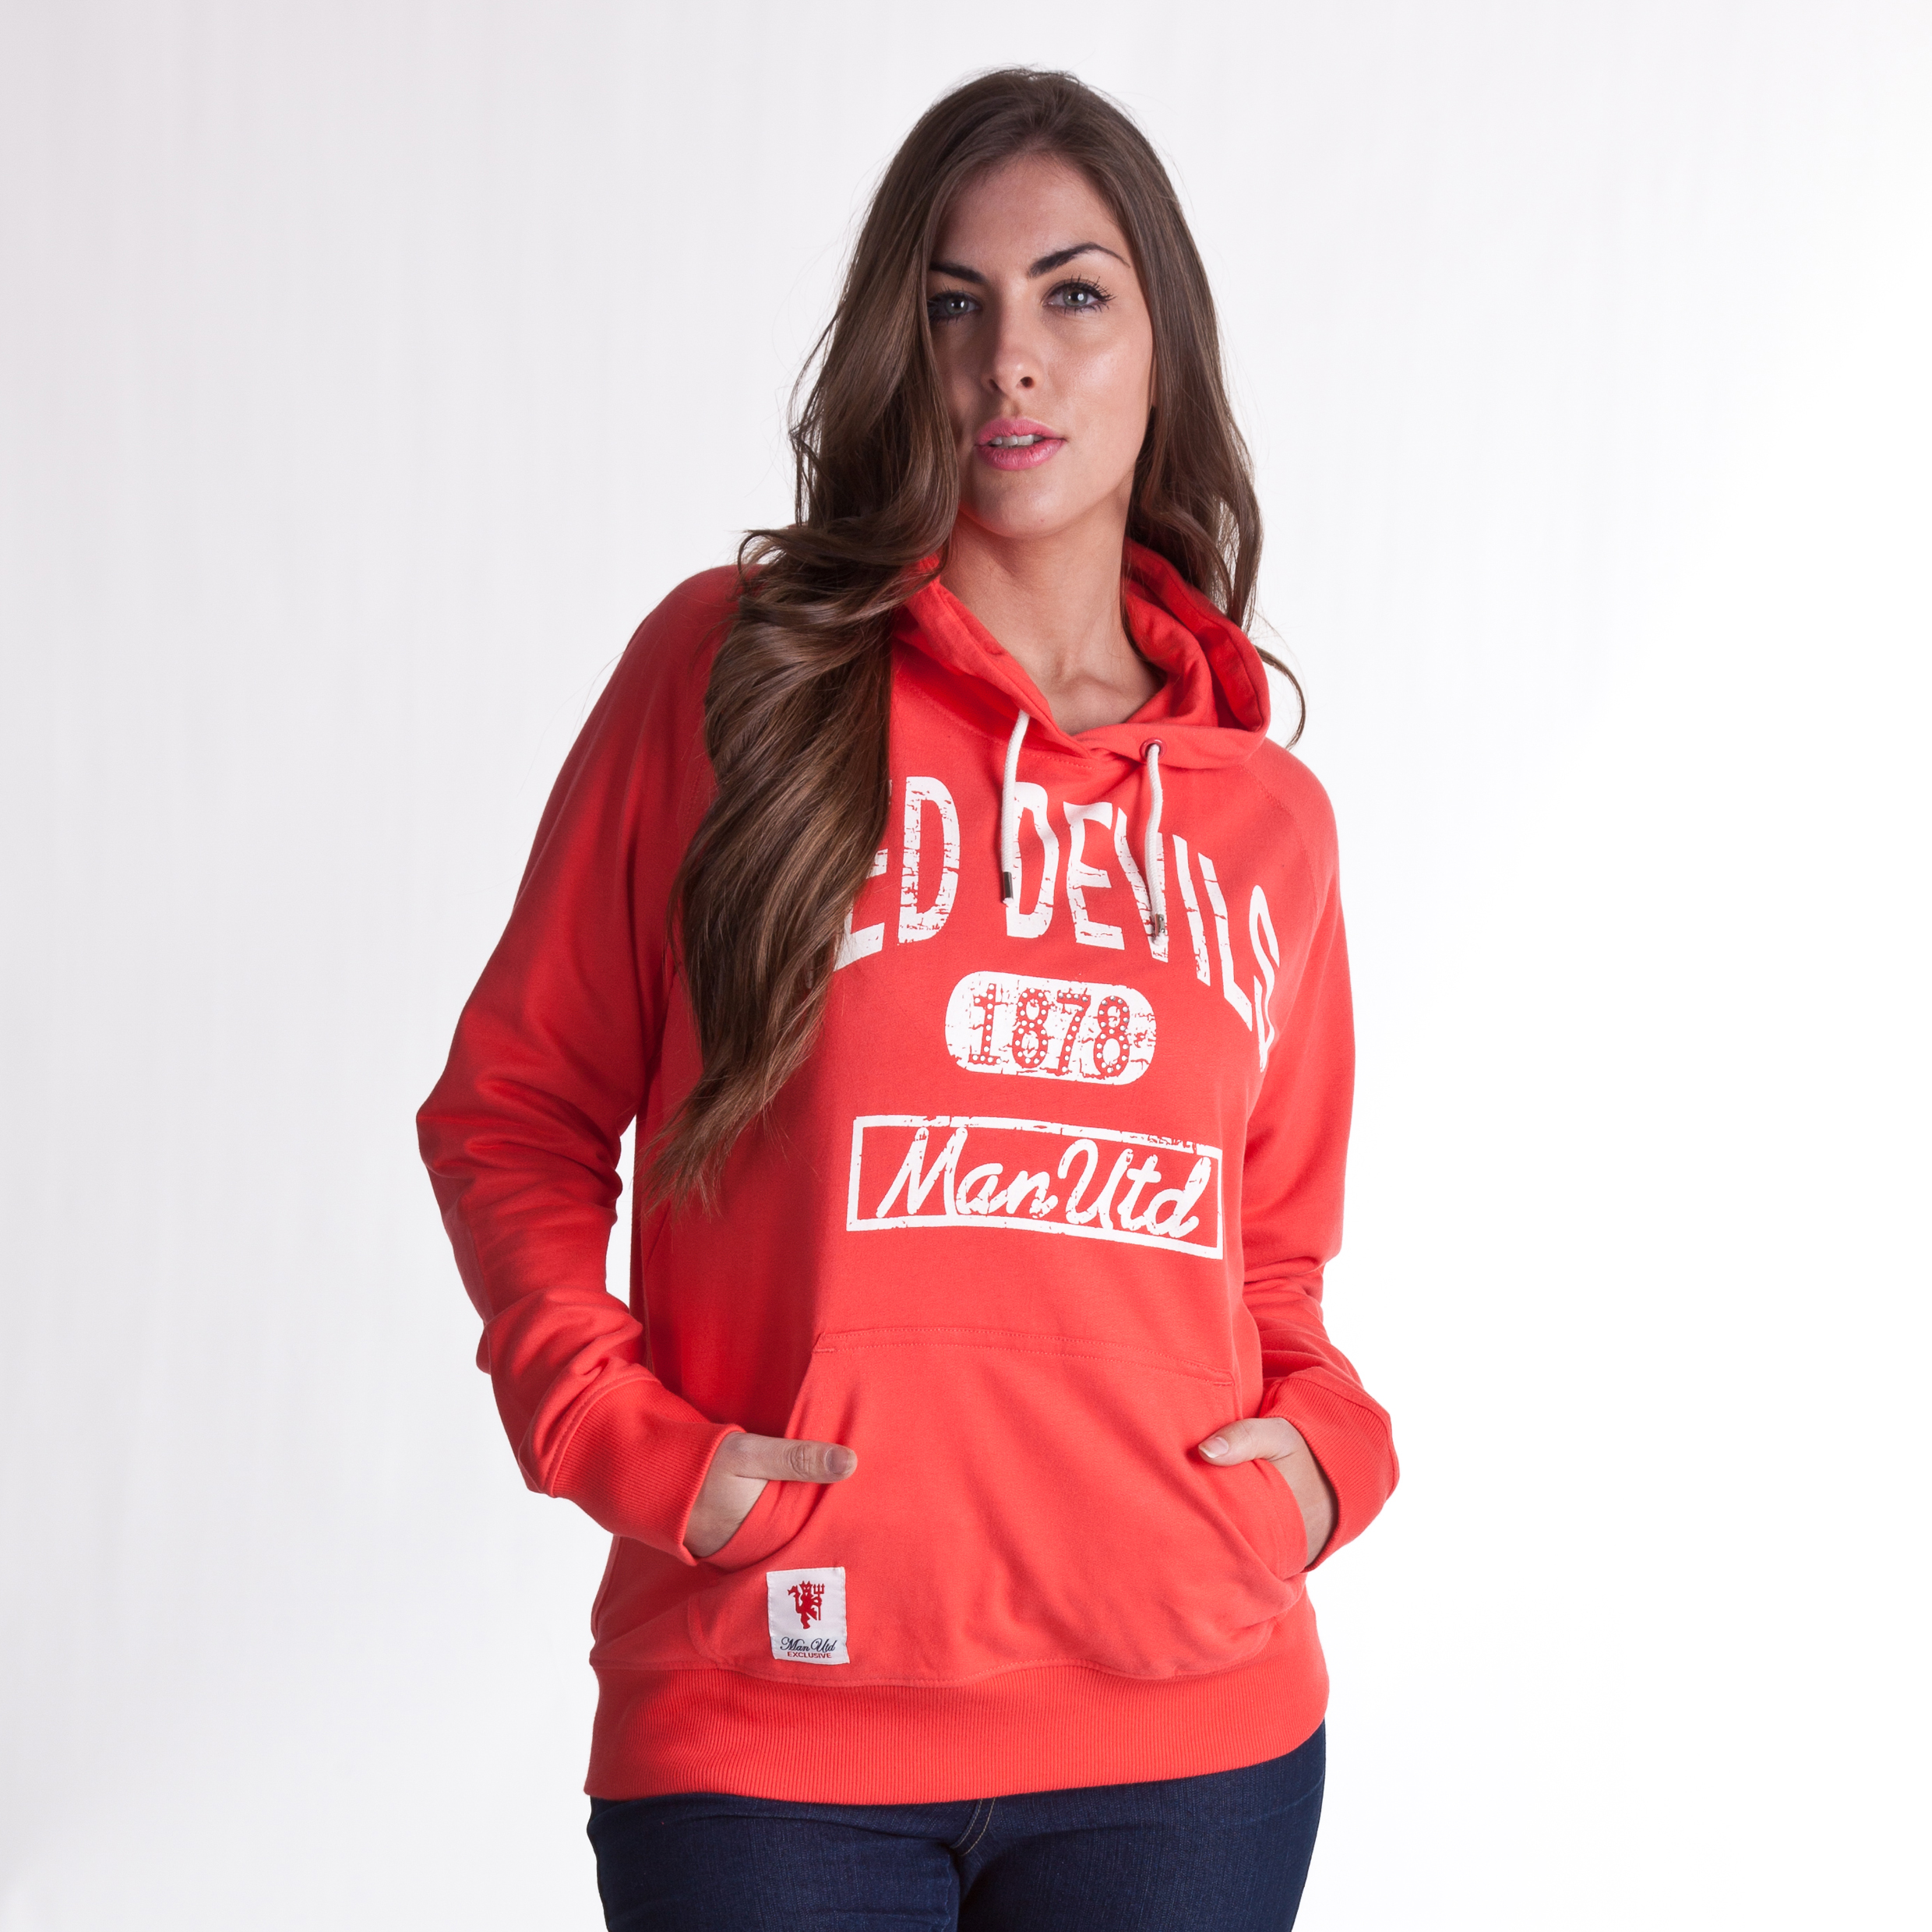 Manchester United Red Devils Diamante Hoody - Hibiscus - Womens